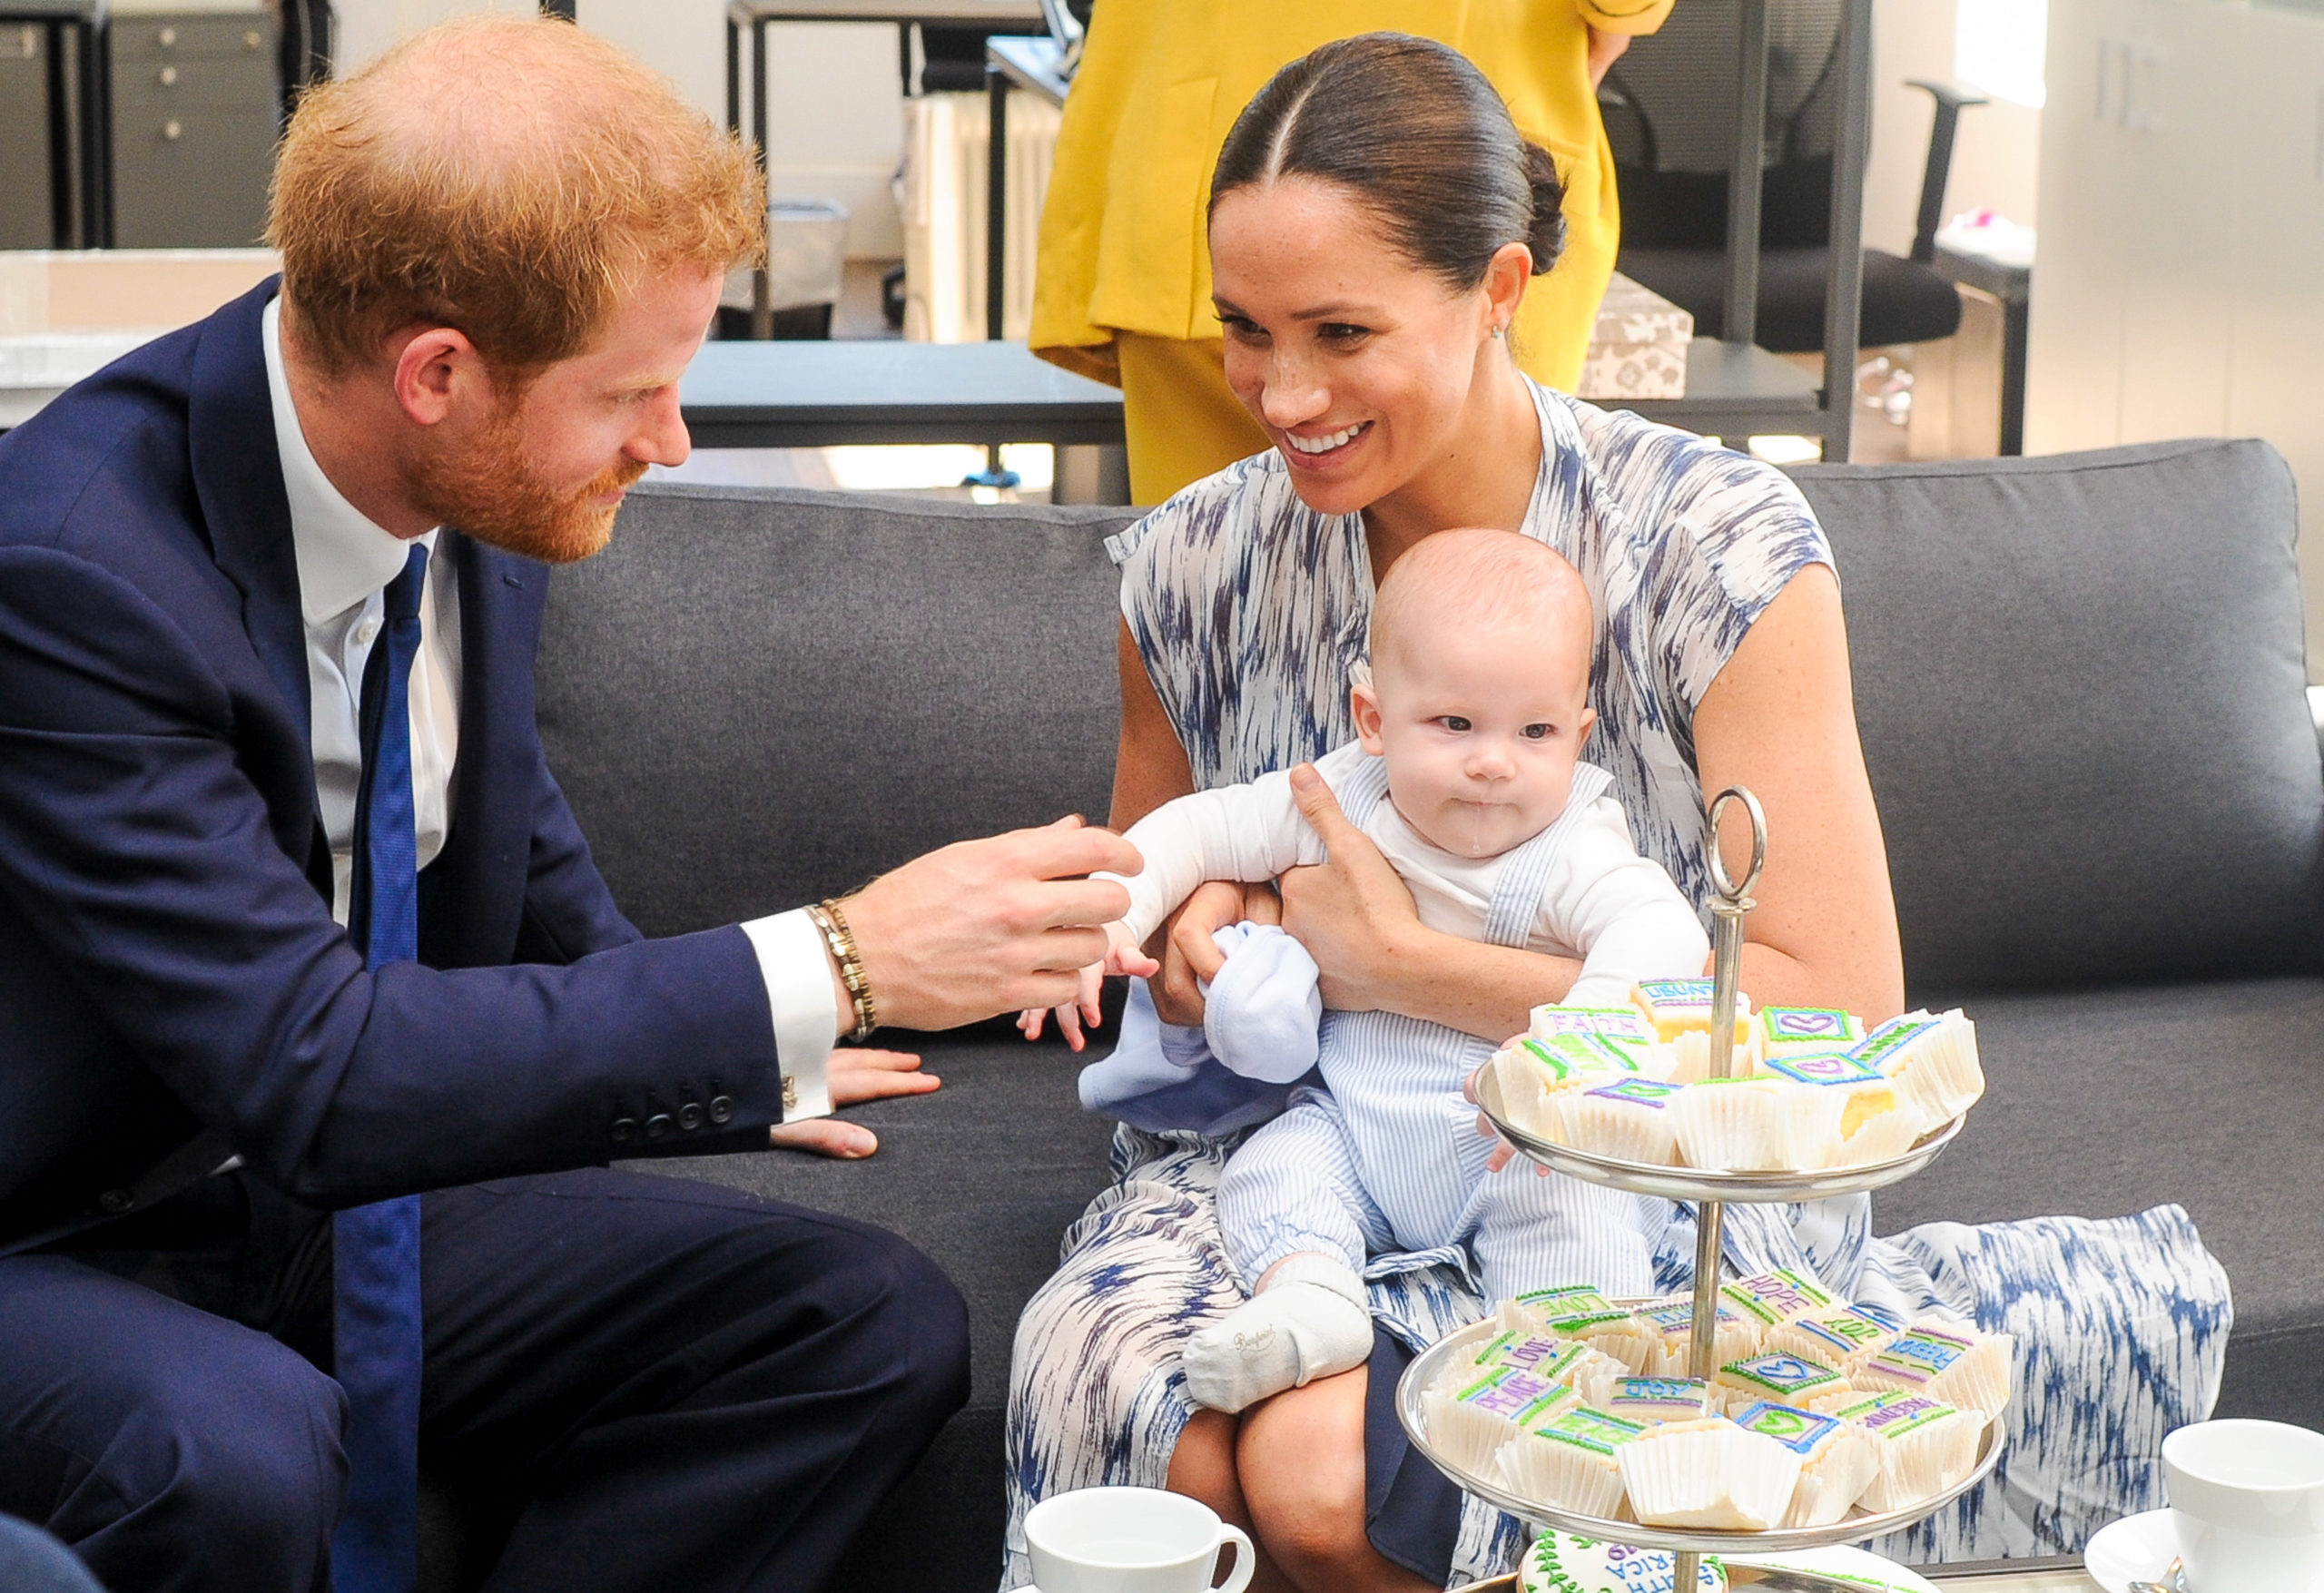 Prince Harry Meghan Markle and baby Archie